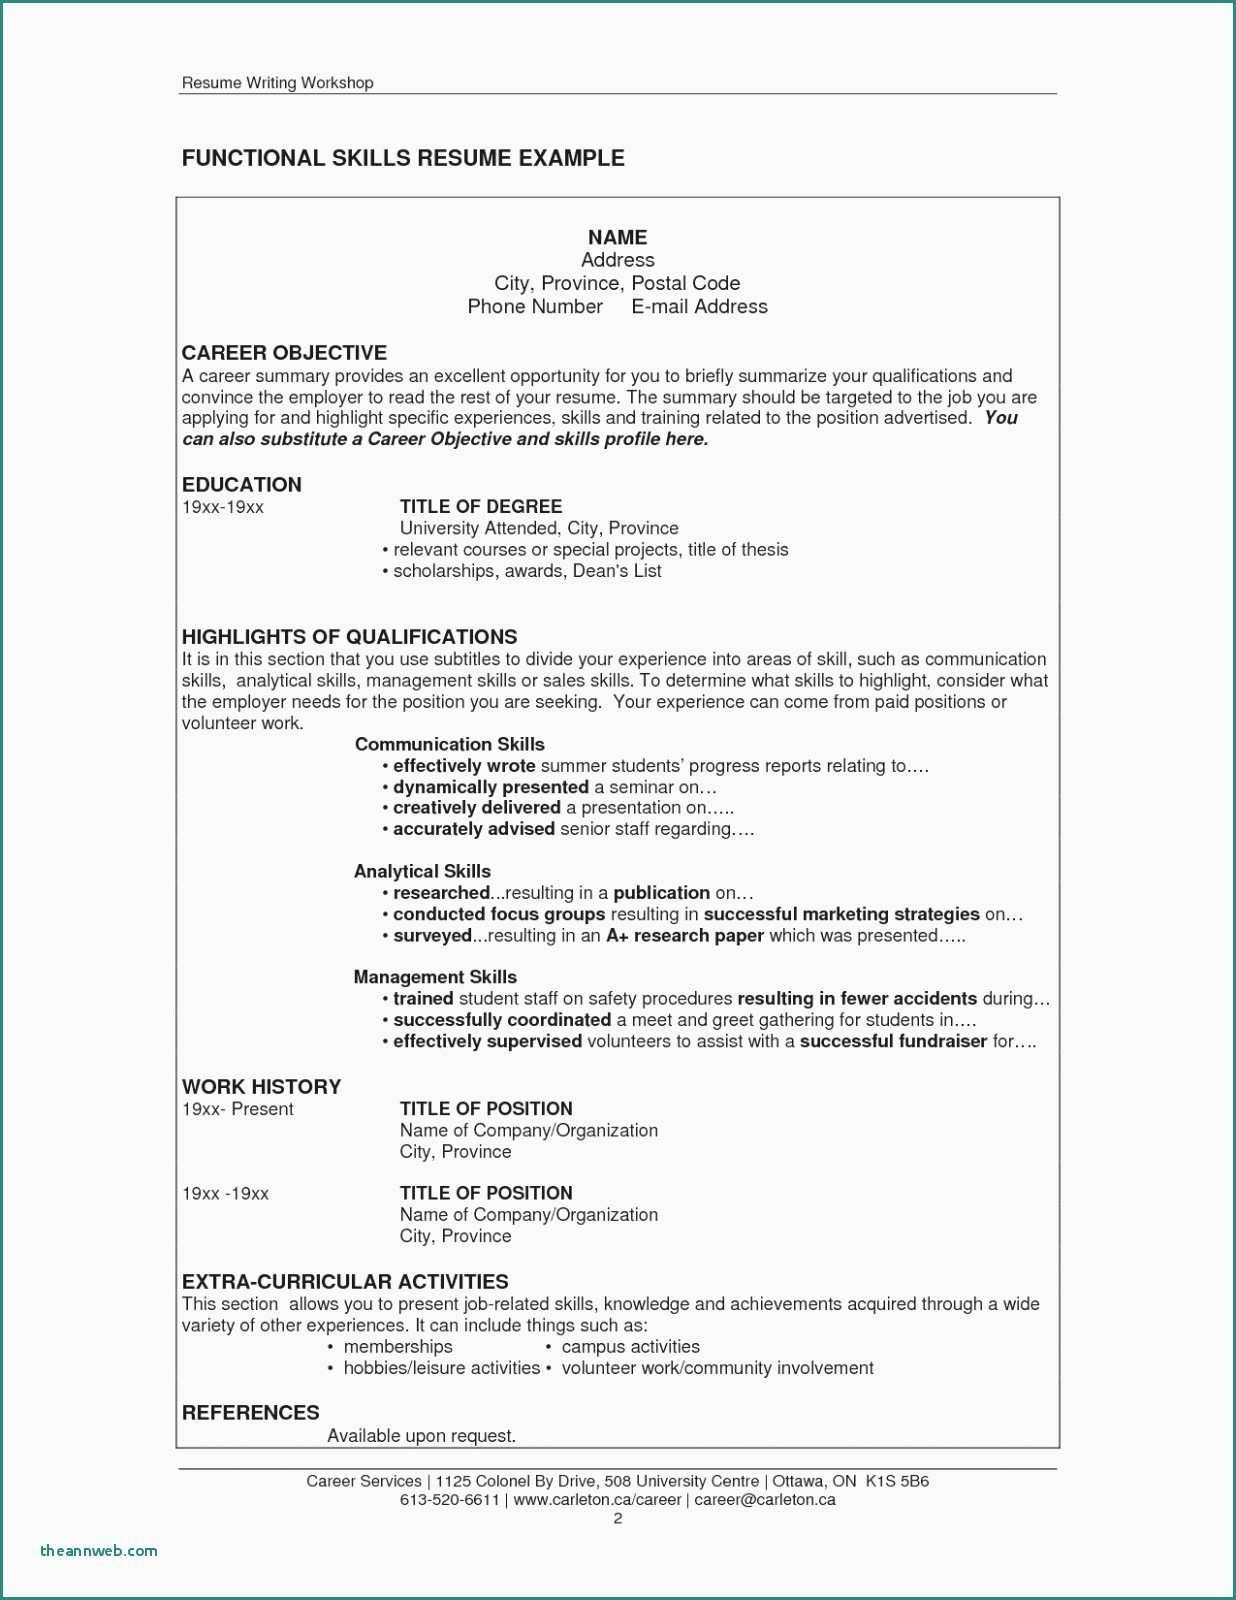 Resume For Stay At Home Mom With No Work Experience Elegant 10 Do